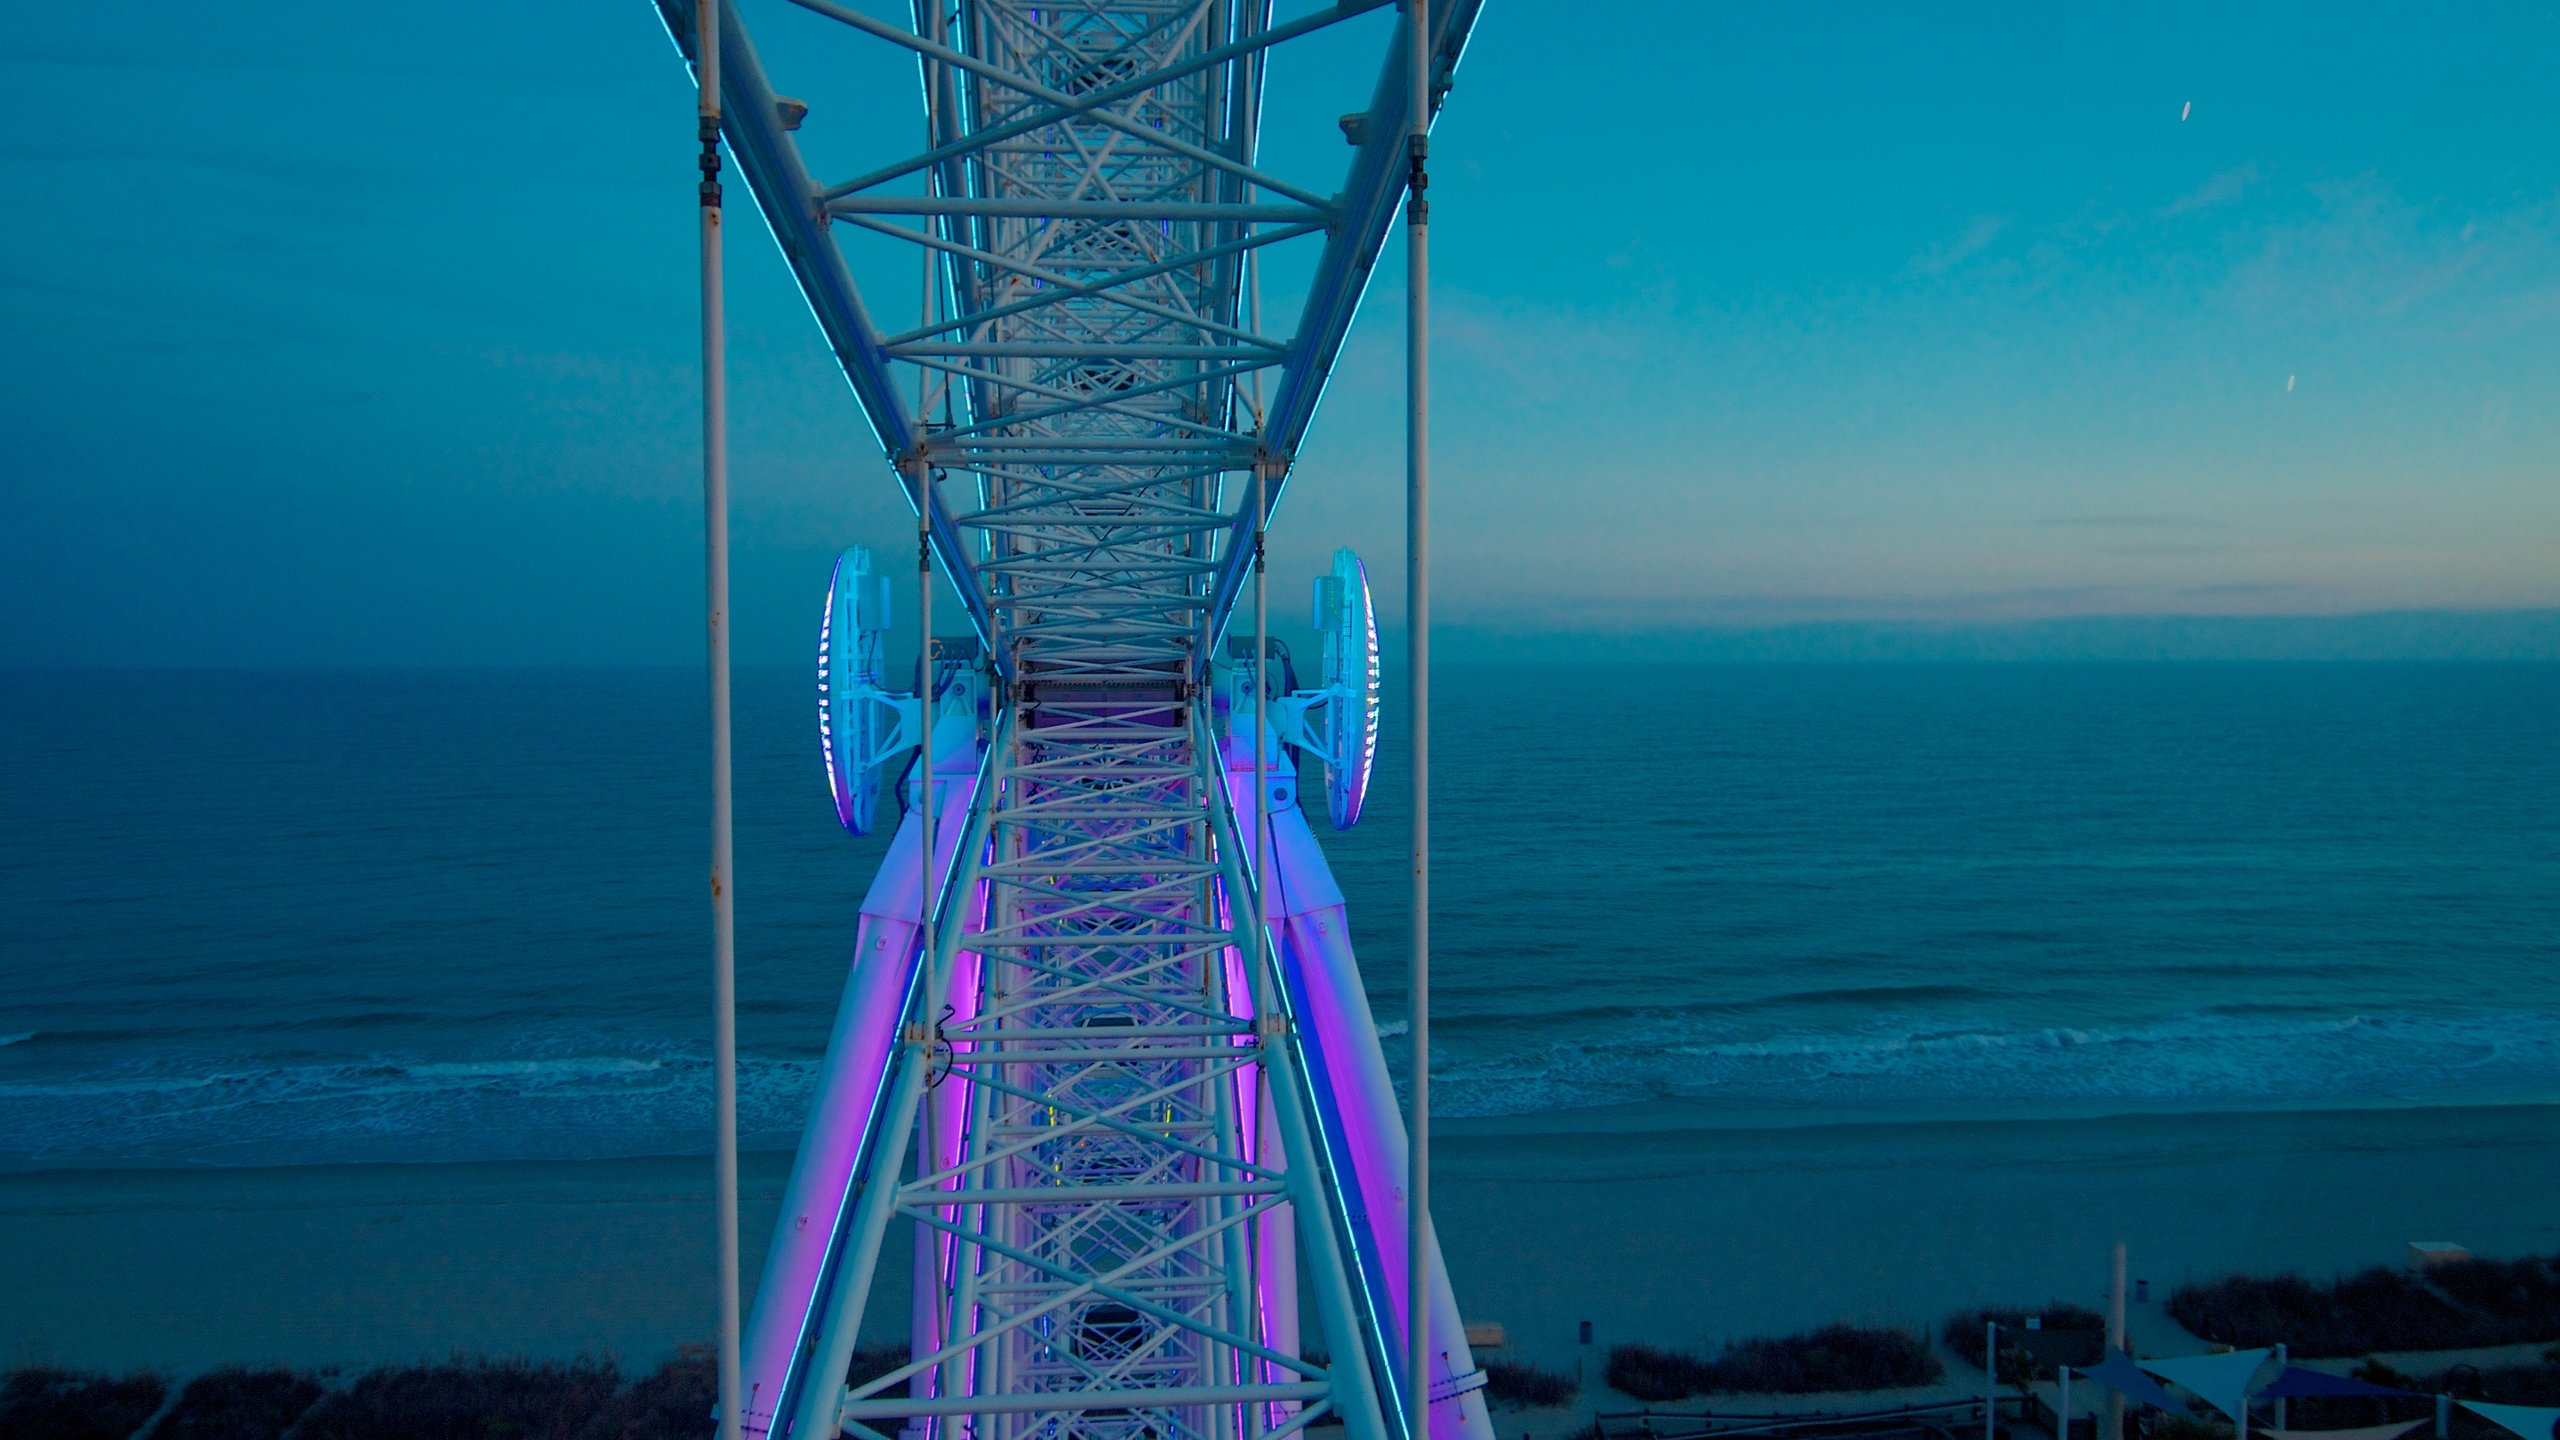 Downtown Myrtle Beach, Myrtle Beach, South Carolina, United States of America